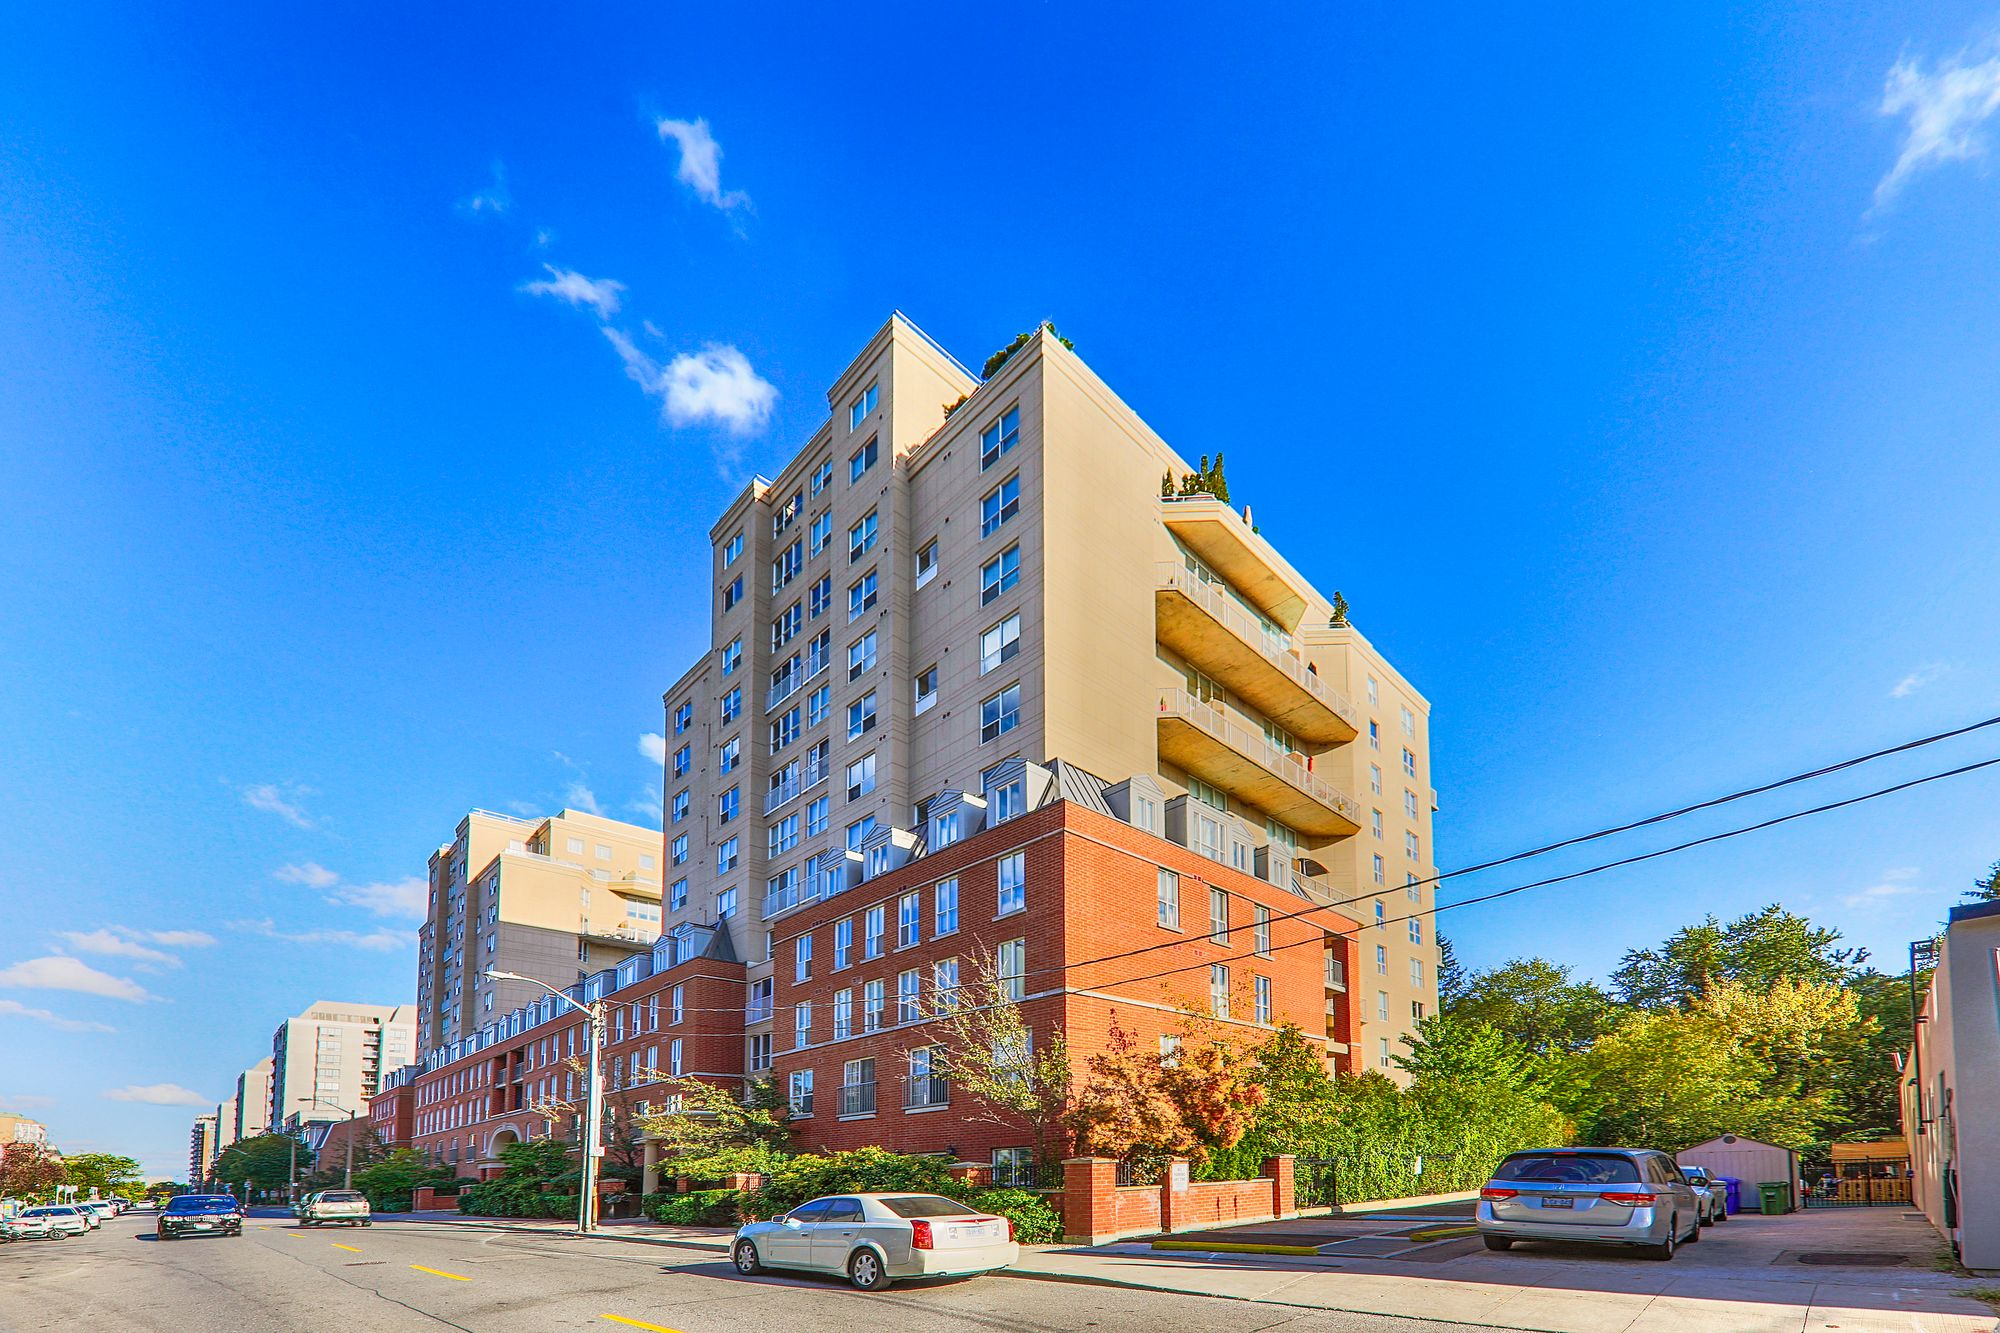 The Metro at 139 Merton St & 119 Merton St. This condo is located in  Midtown, Toronto - image #1 of 5 by Strata.ca